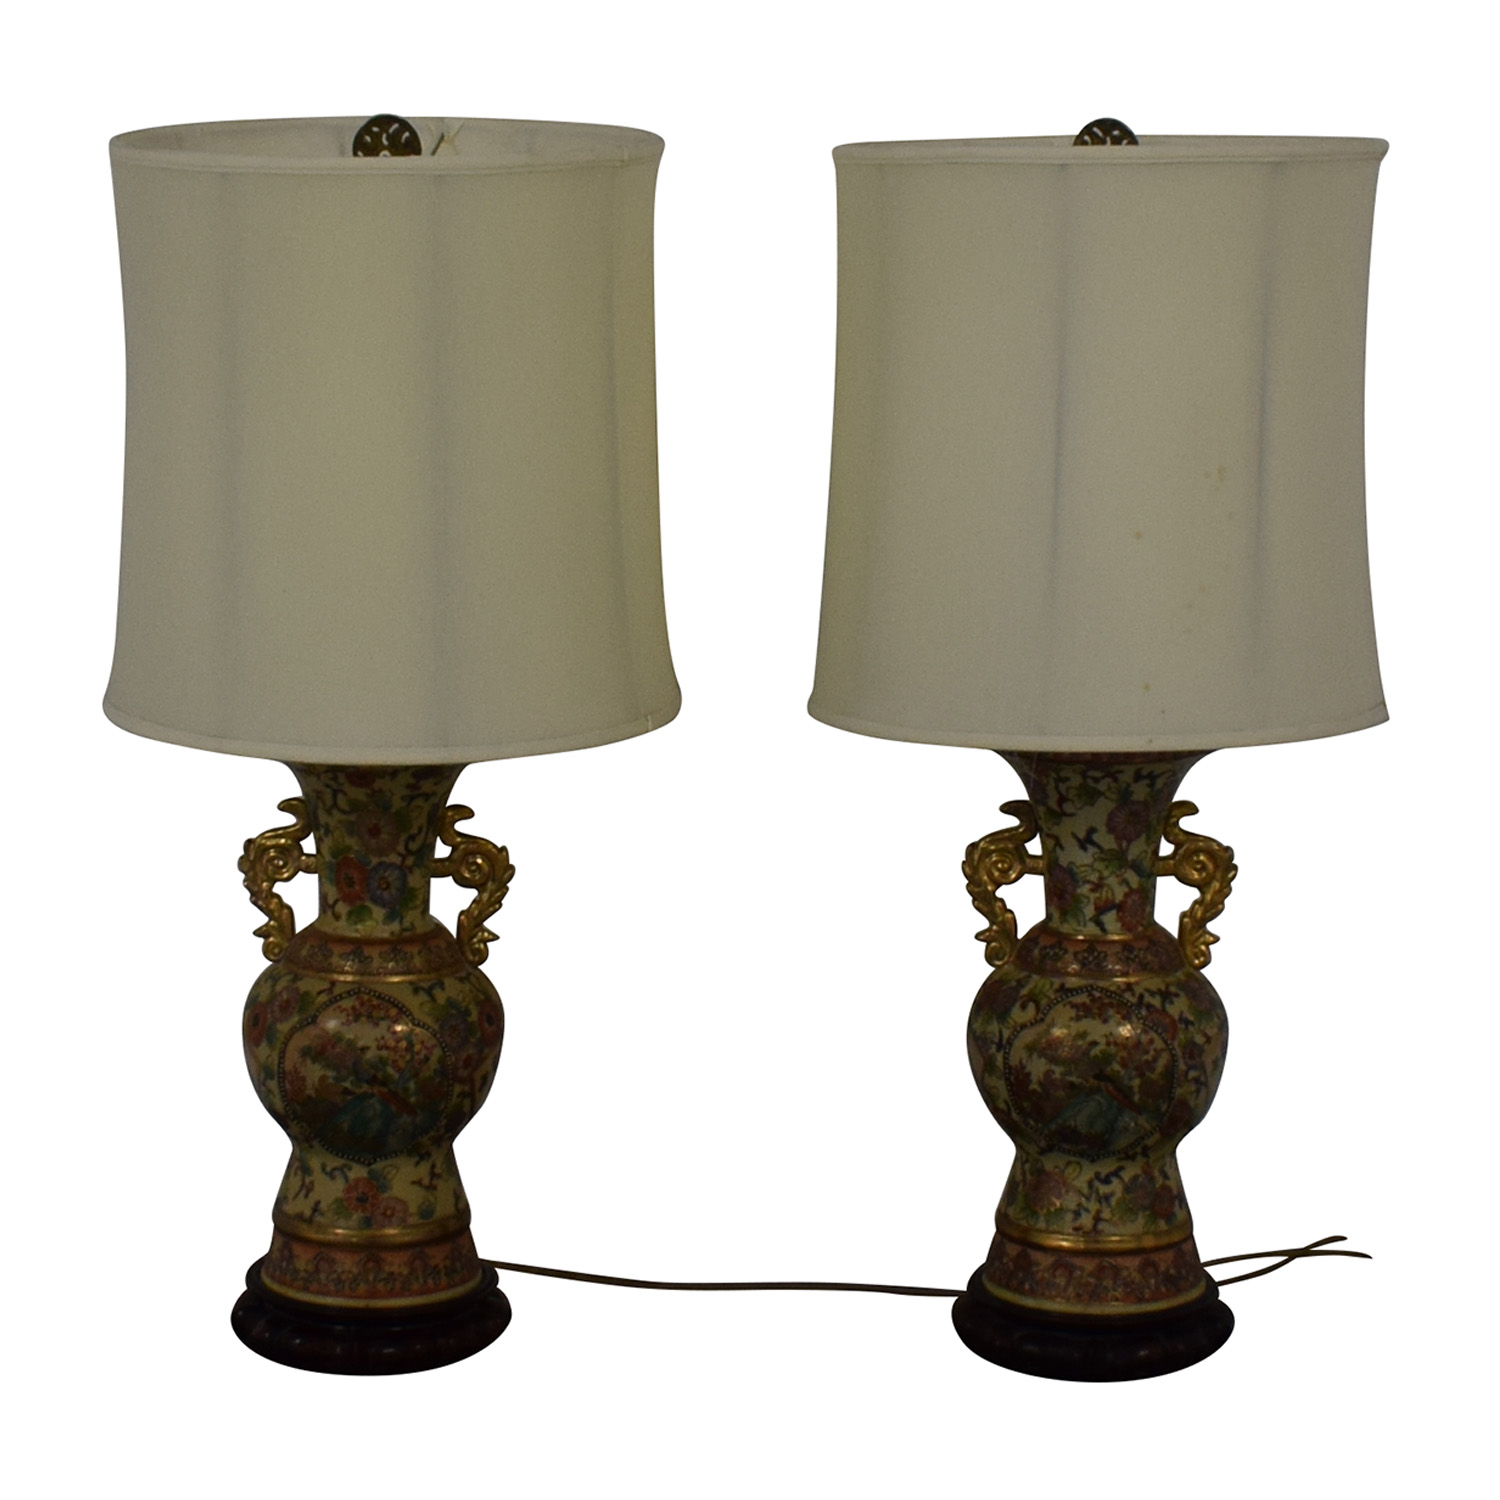 Vintage Celadon Oriental Table Lamps Lamps